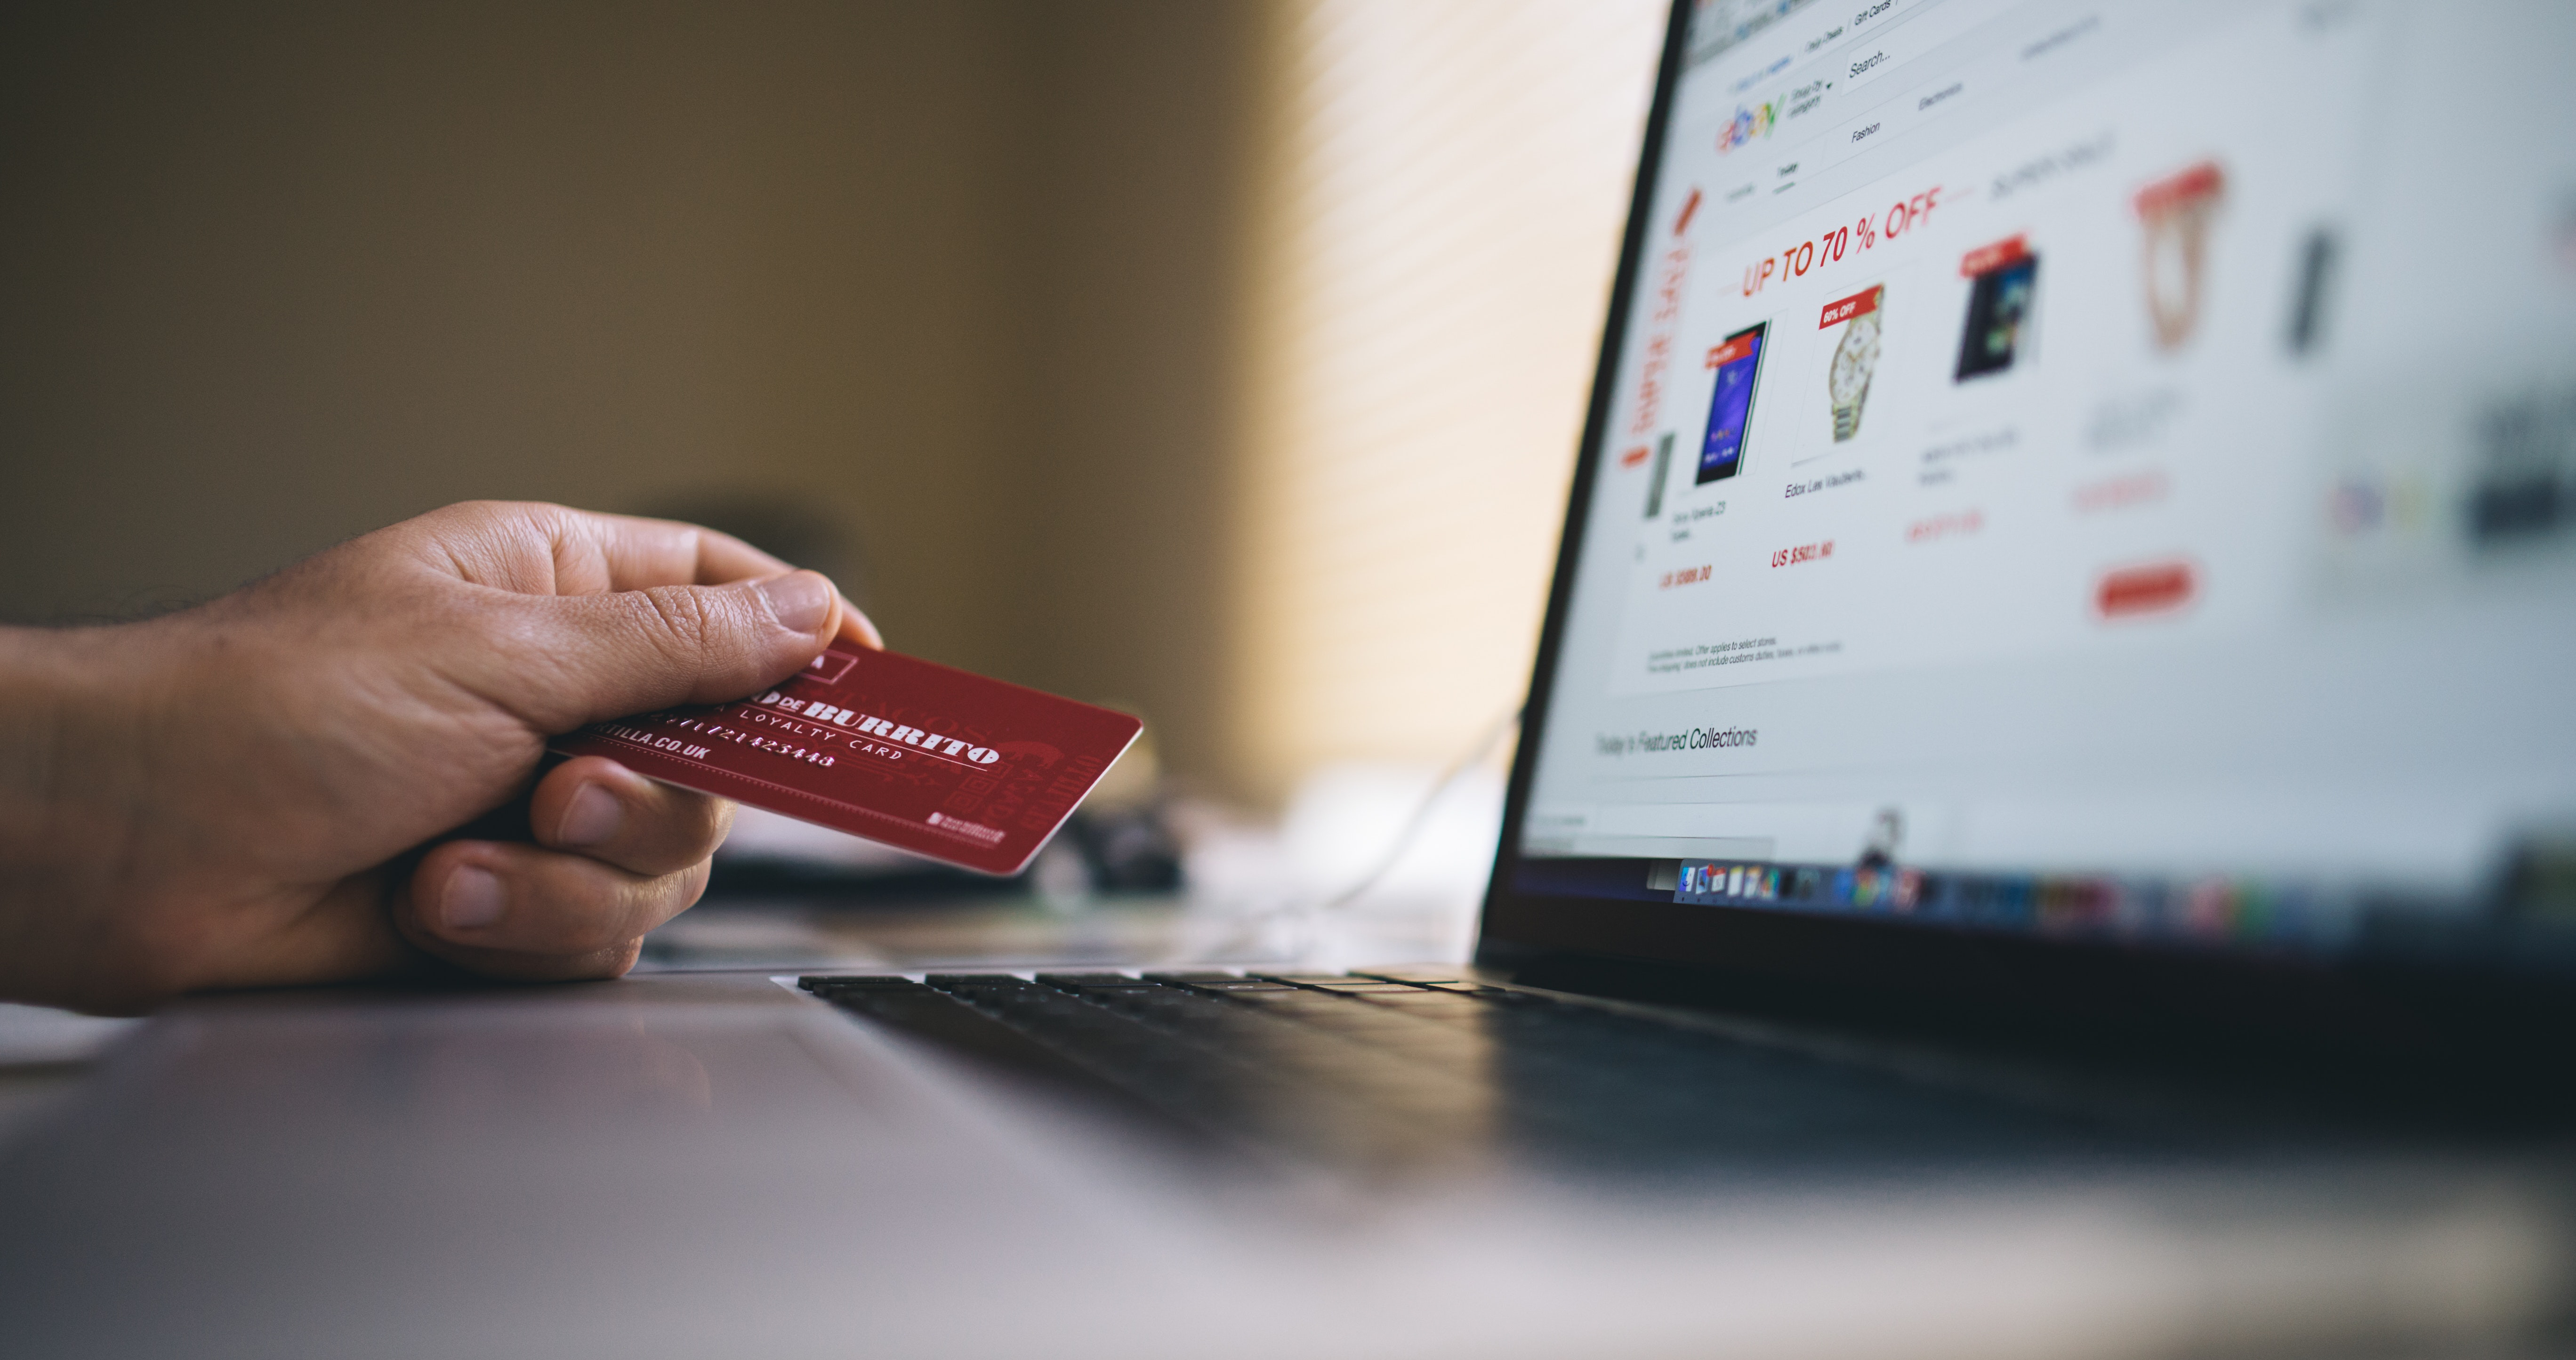 Making sales online in ecommerce